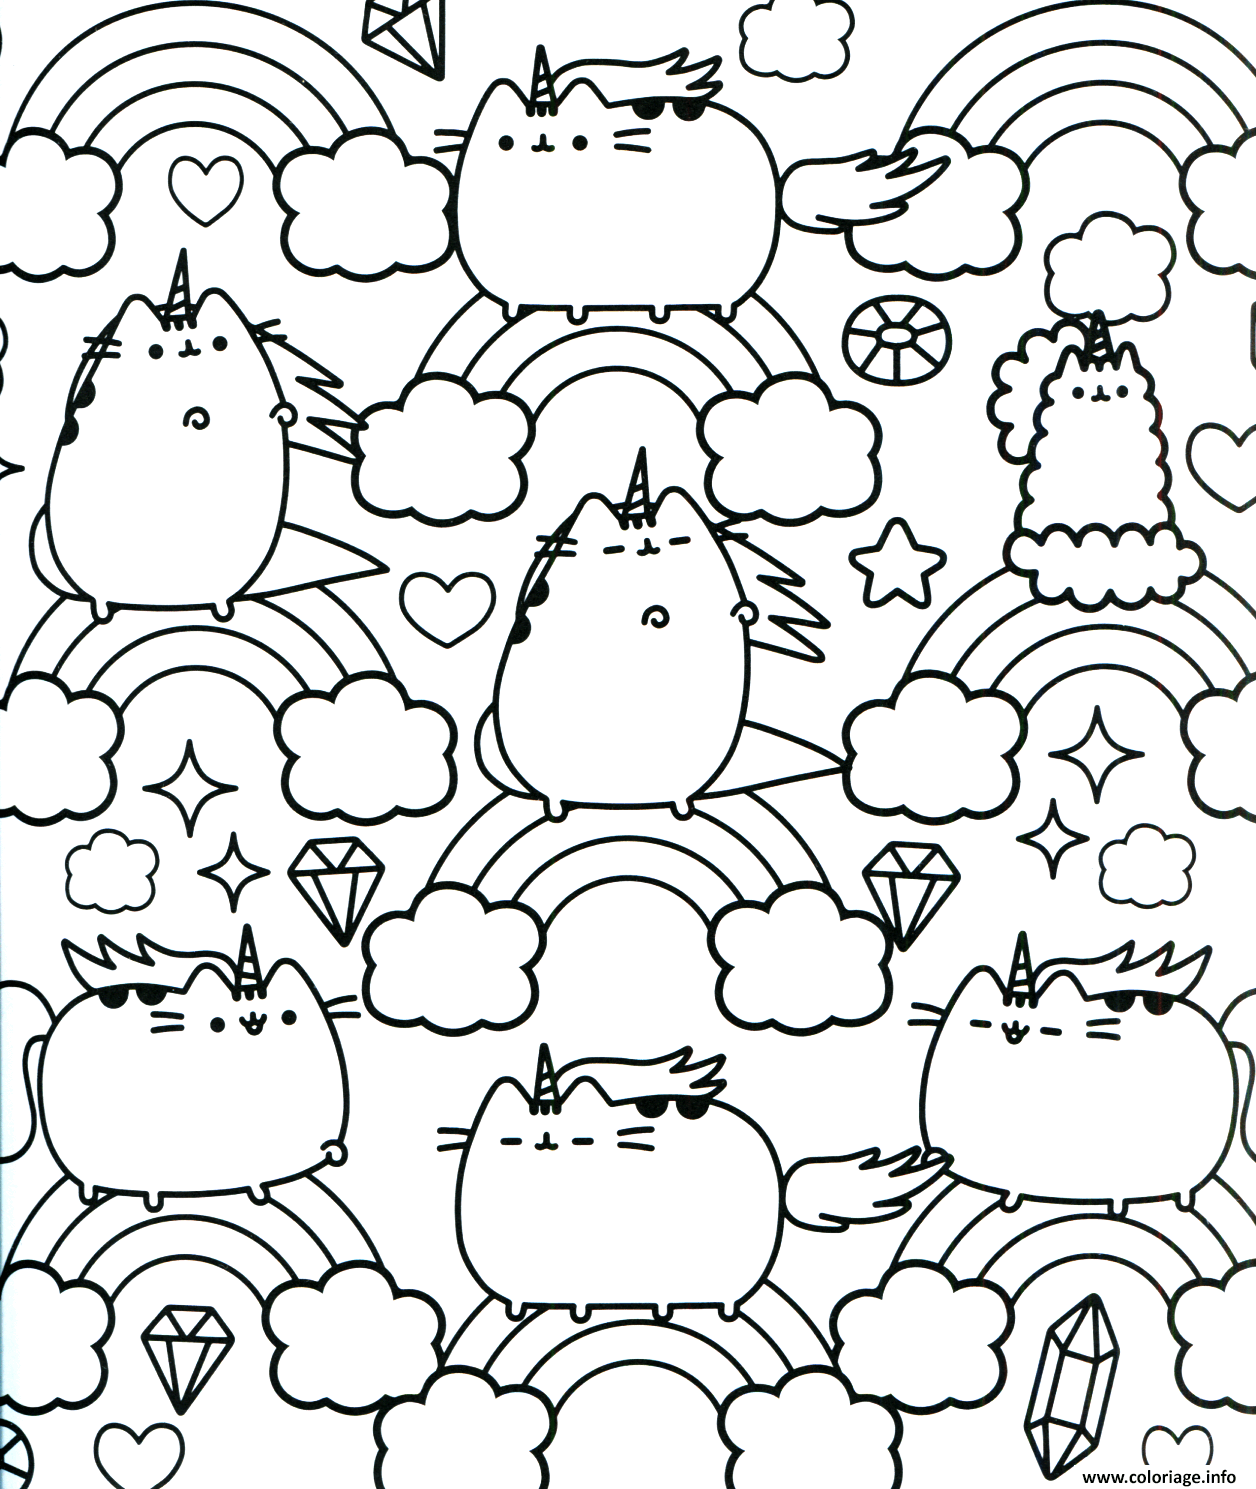 Coloriage Unicorn.Coloriage Pusheen Unicorn Arc En Ciel Pattern Dessin